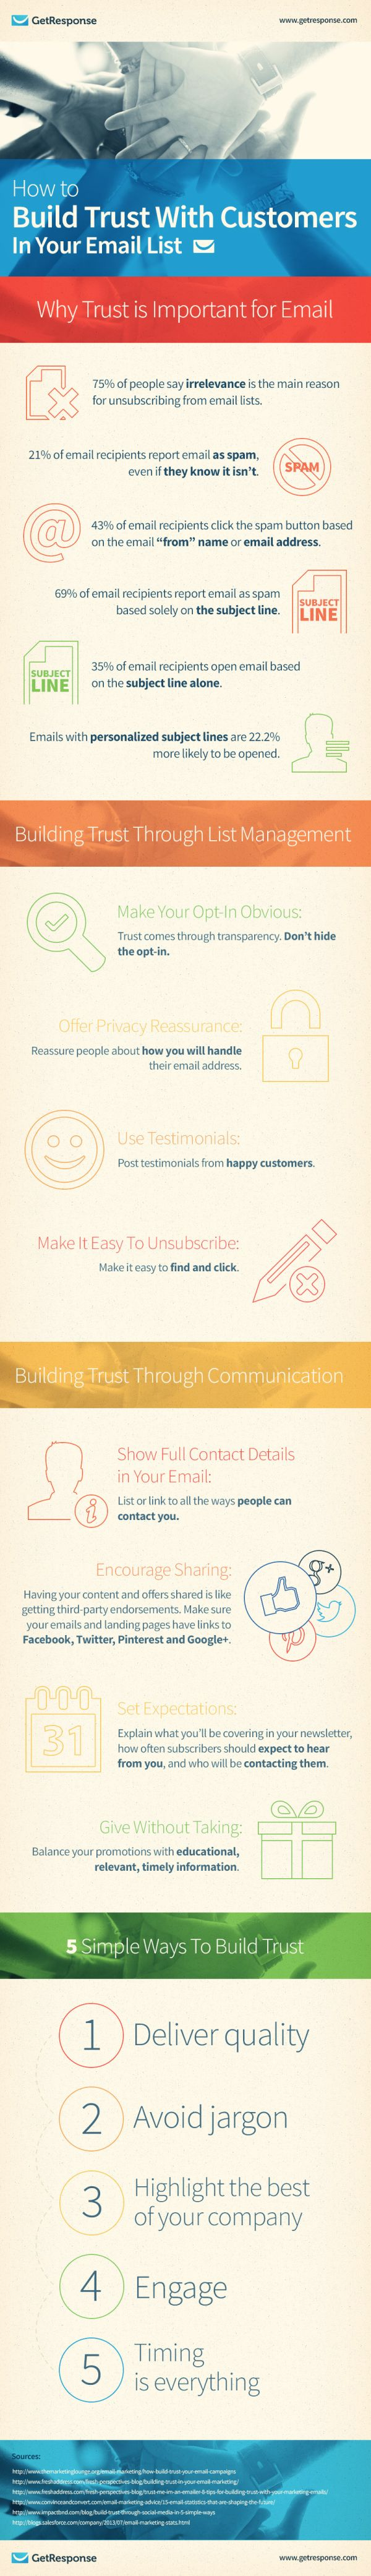 Infographic: How To Build Trust With Customers In Your Email List #infographic